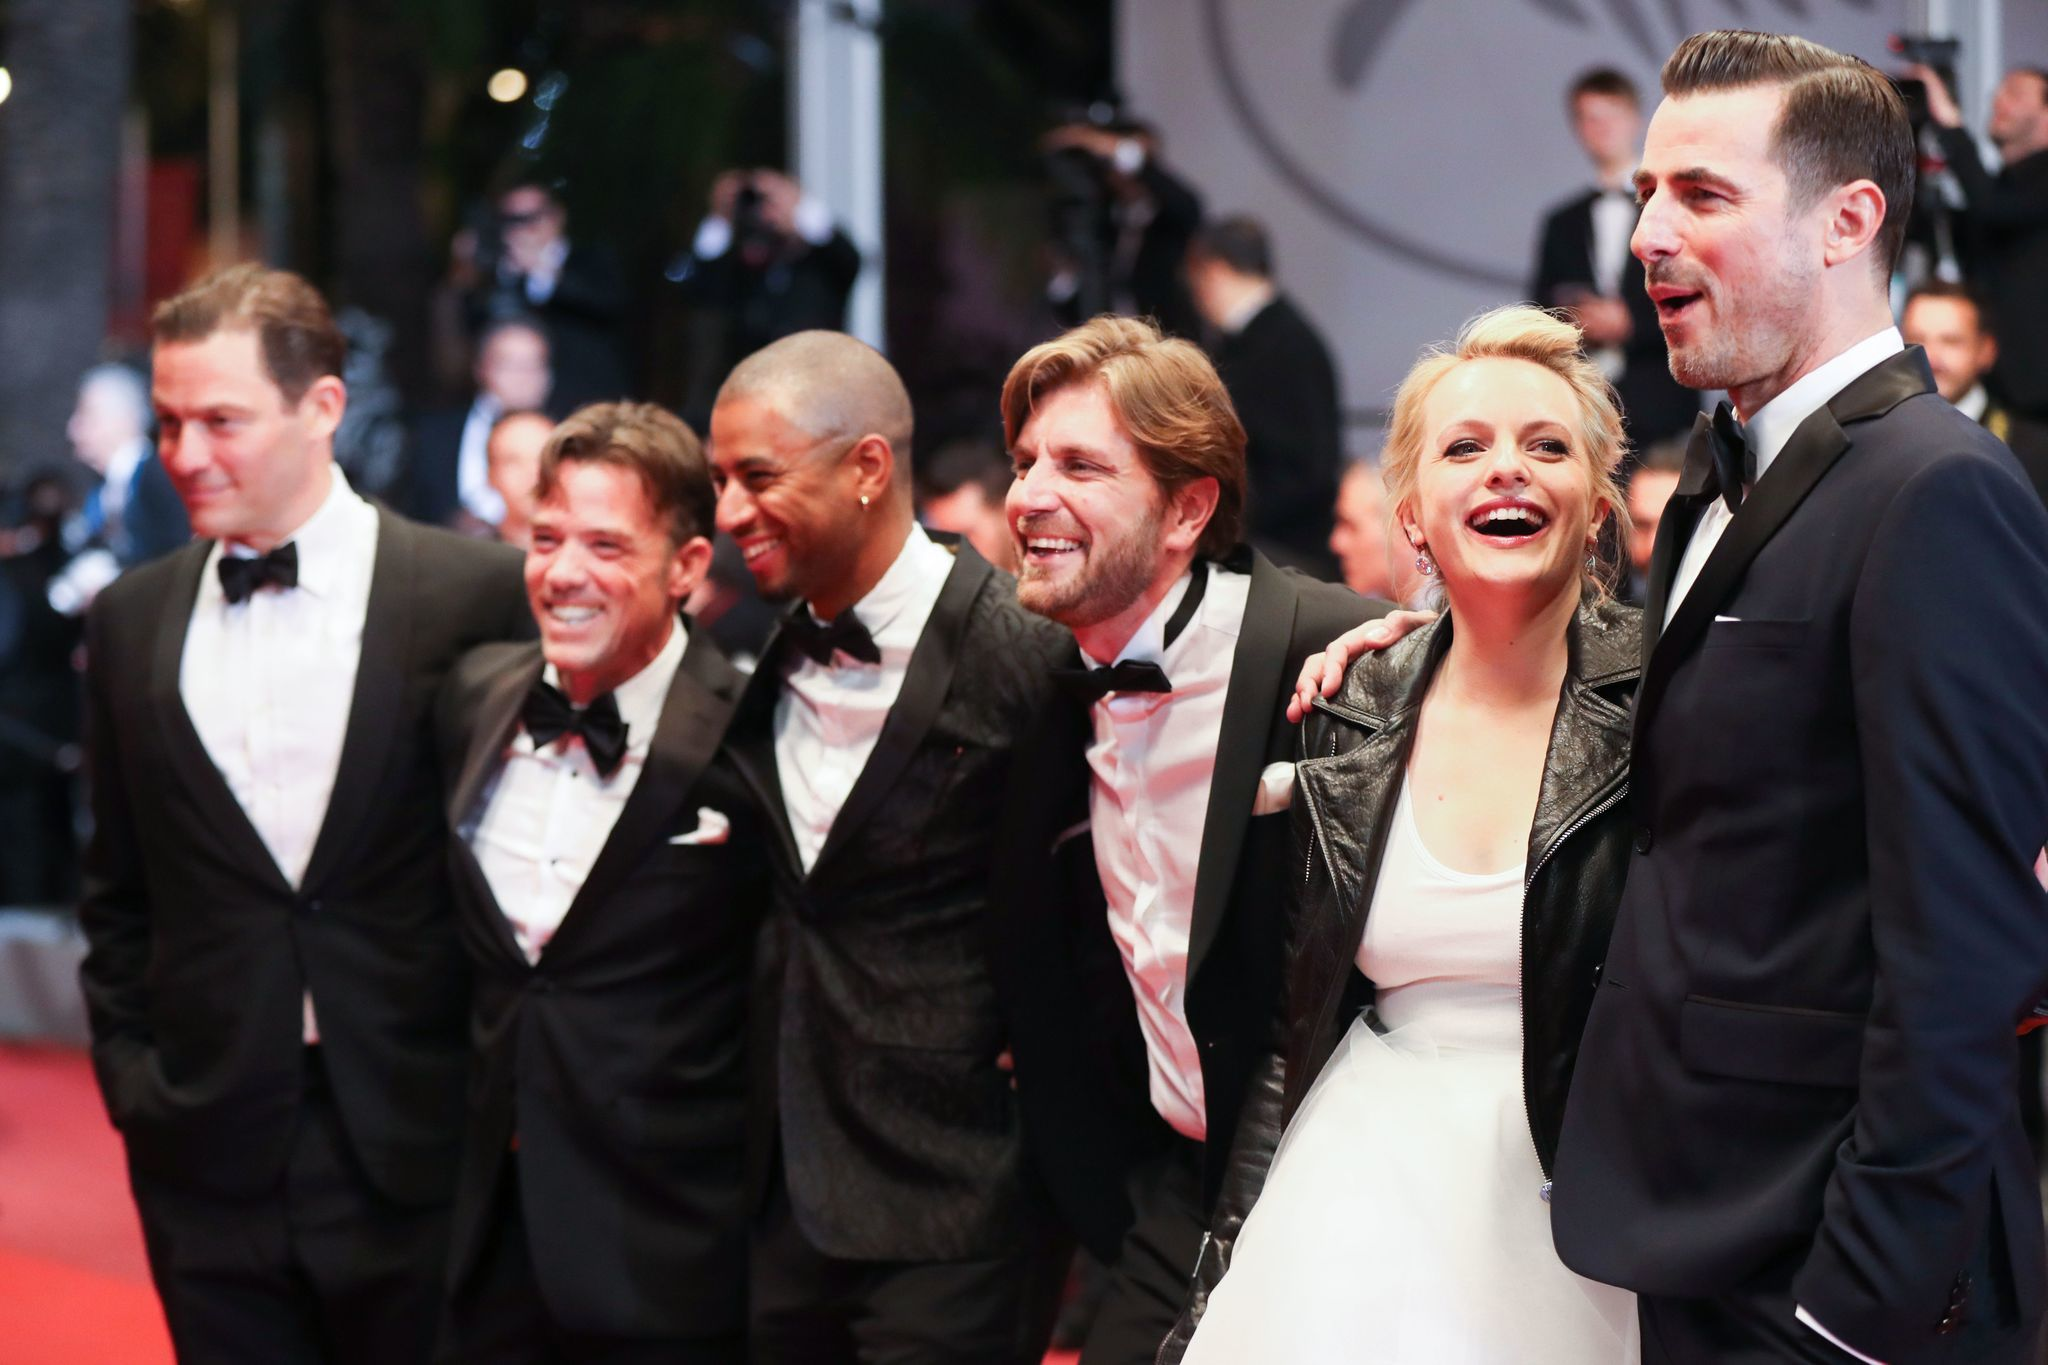 """The Square"" team: from left, actors Dominic West, Terry Notary and Christopher Læsso, director Ruben Ostlund, actress Elisabeth Moss and actor Claes Bang as they arrive on the red carpet at the 70th edition of the Cannes Film Festival."